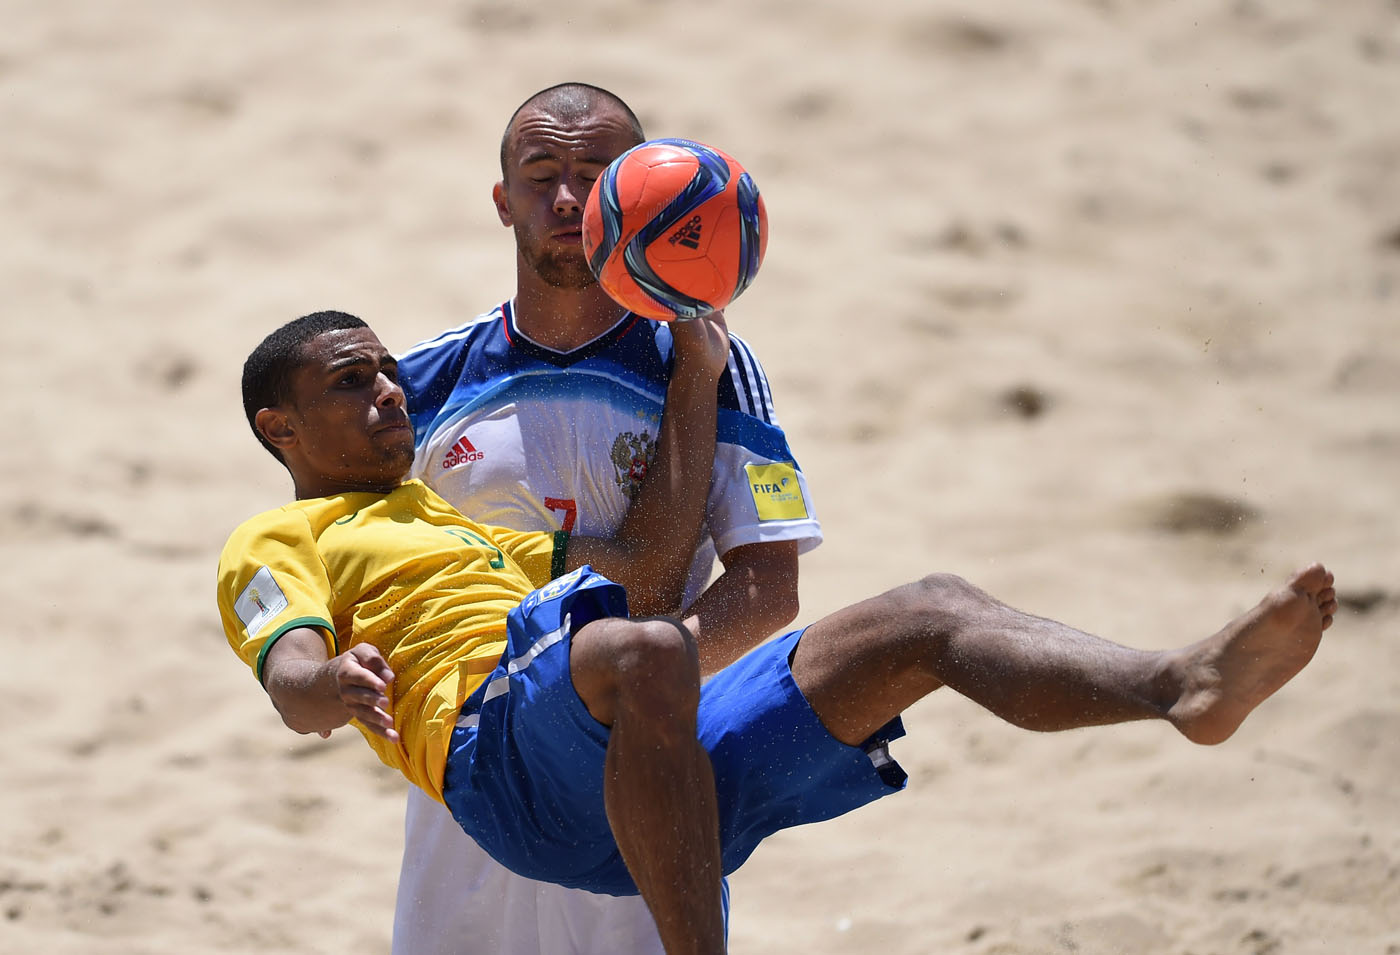 FIFA Beach Soccer World Cup